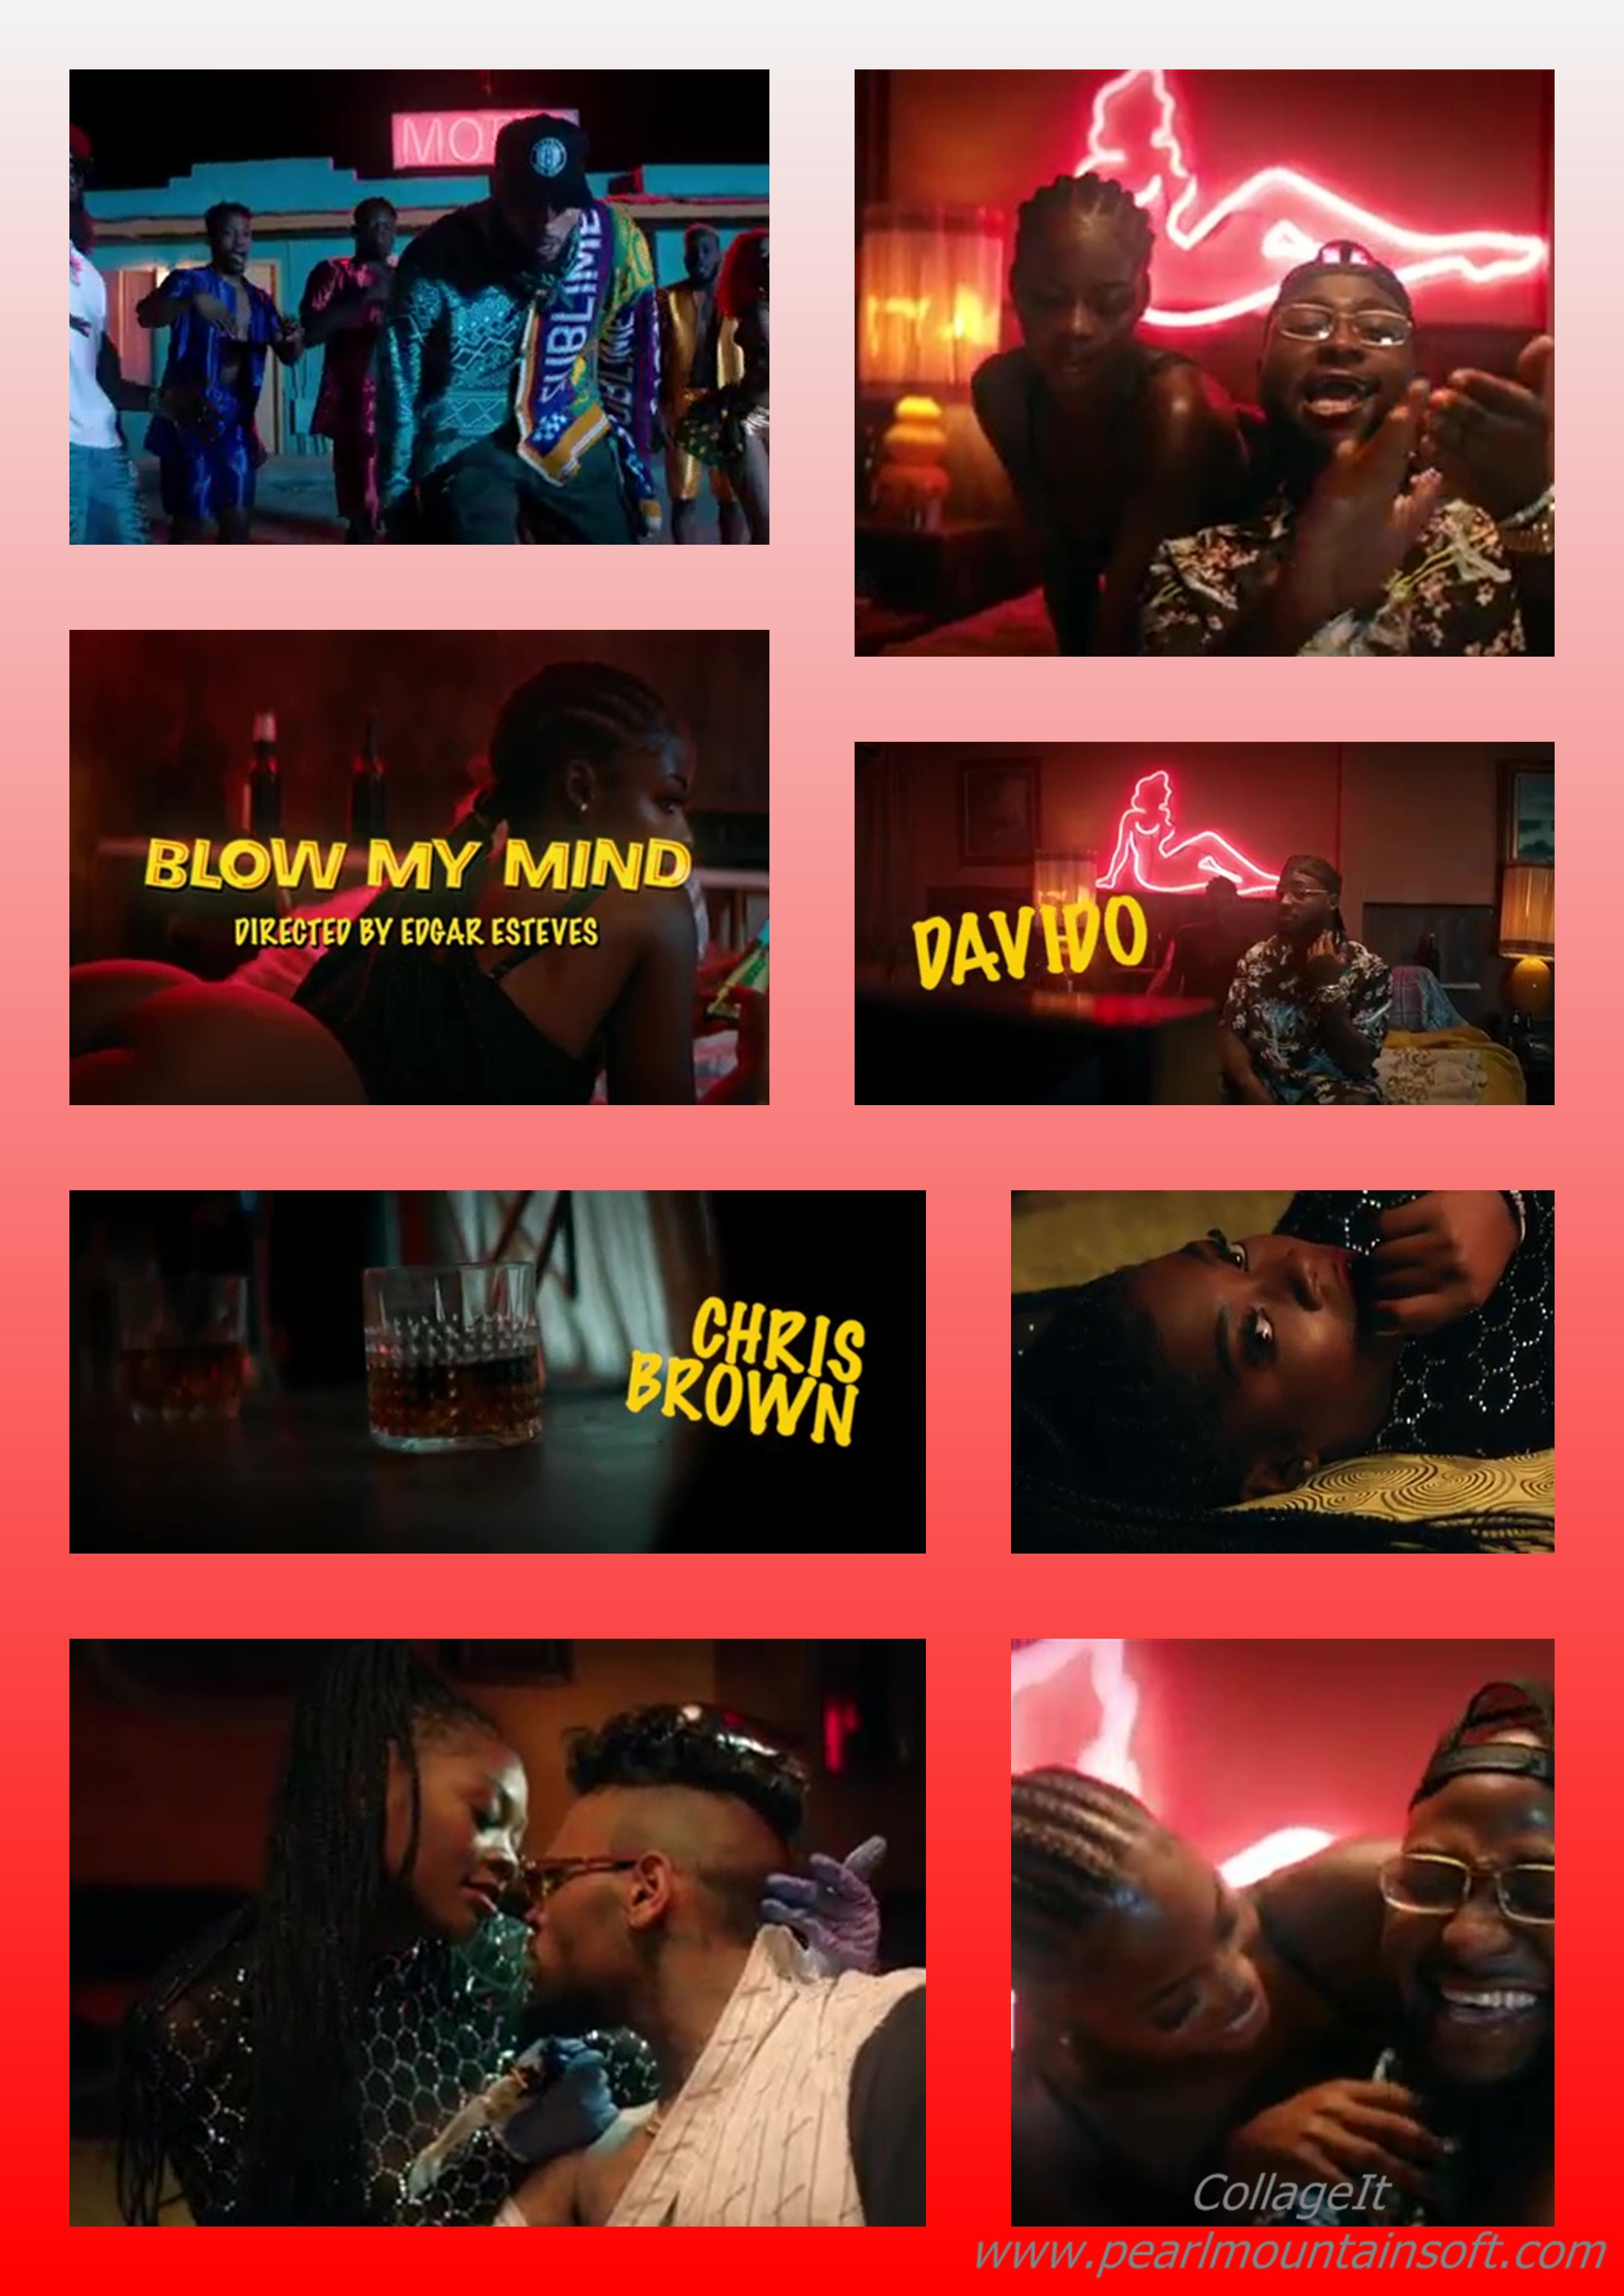 """(+LYRICS+TRANSLATION+MEANING) MUSIC REVIEW: BLOW MY MIND BY DAVIDO FT CHRIS BROWN """"THIS BEYONCE'S SONG- 'BROWN SKIN GIRL' HAS REALLY CHANGED A LOT OF THINGS O!"""""""